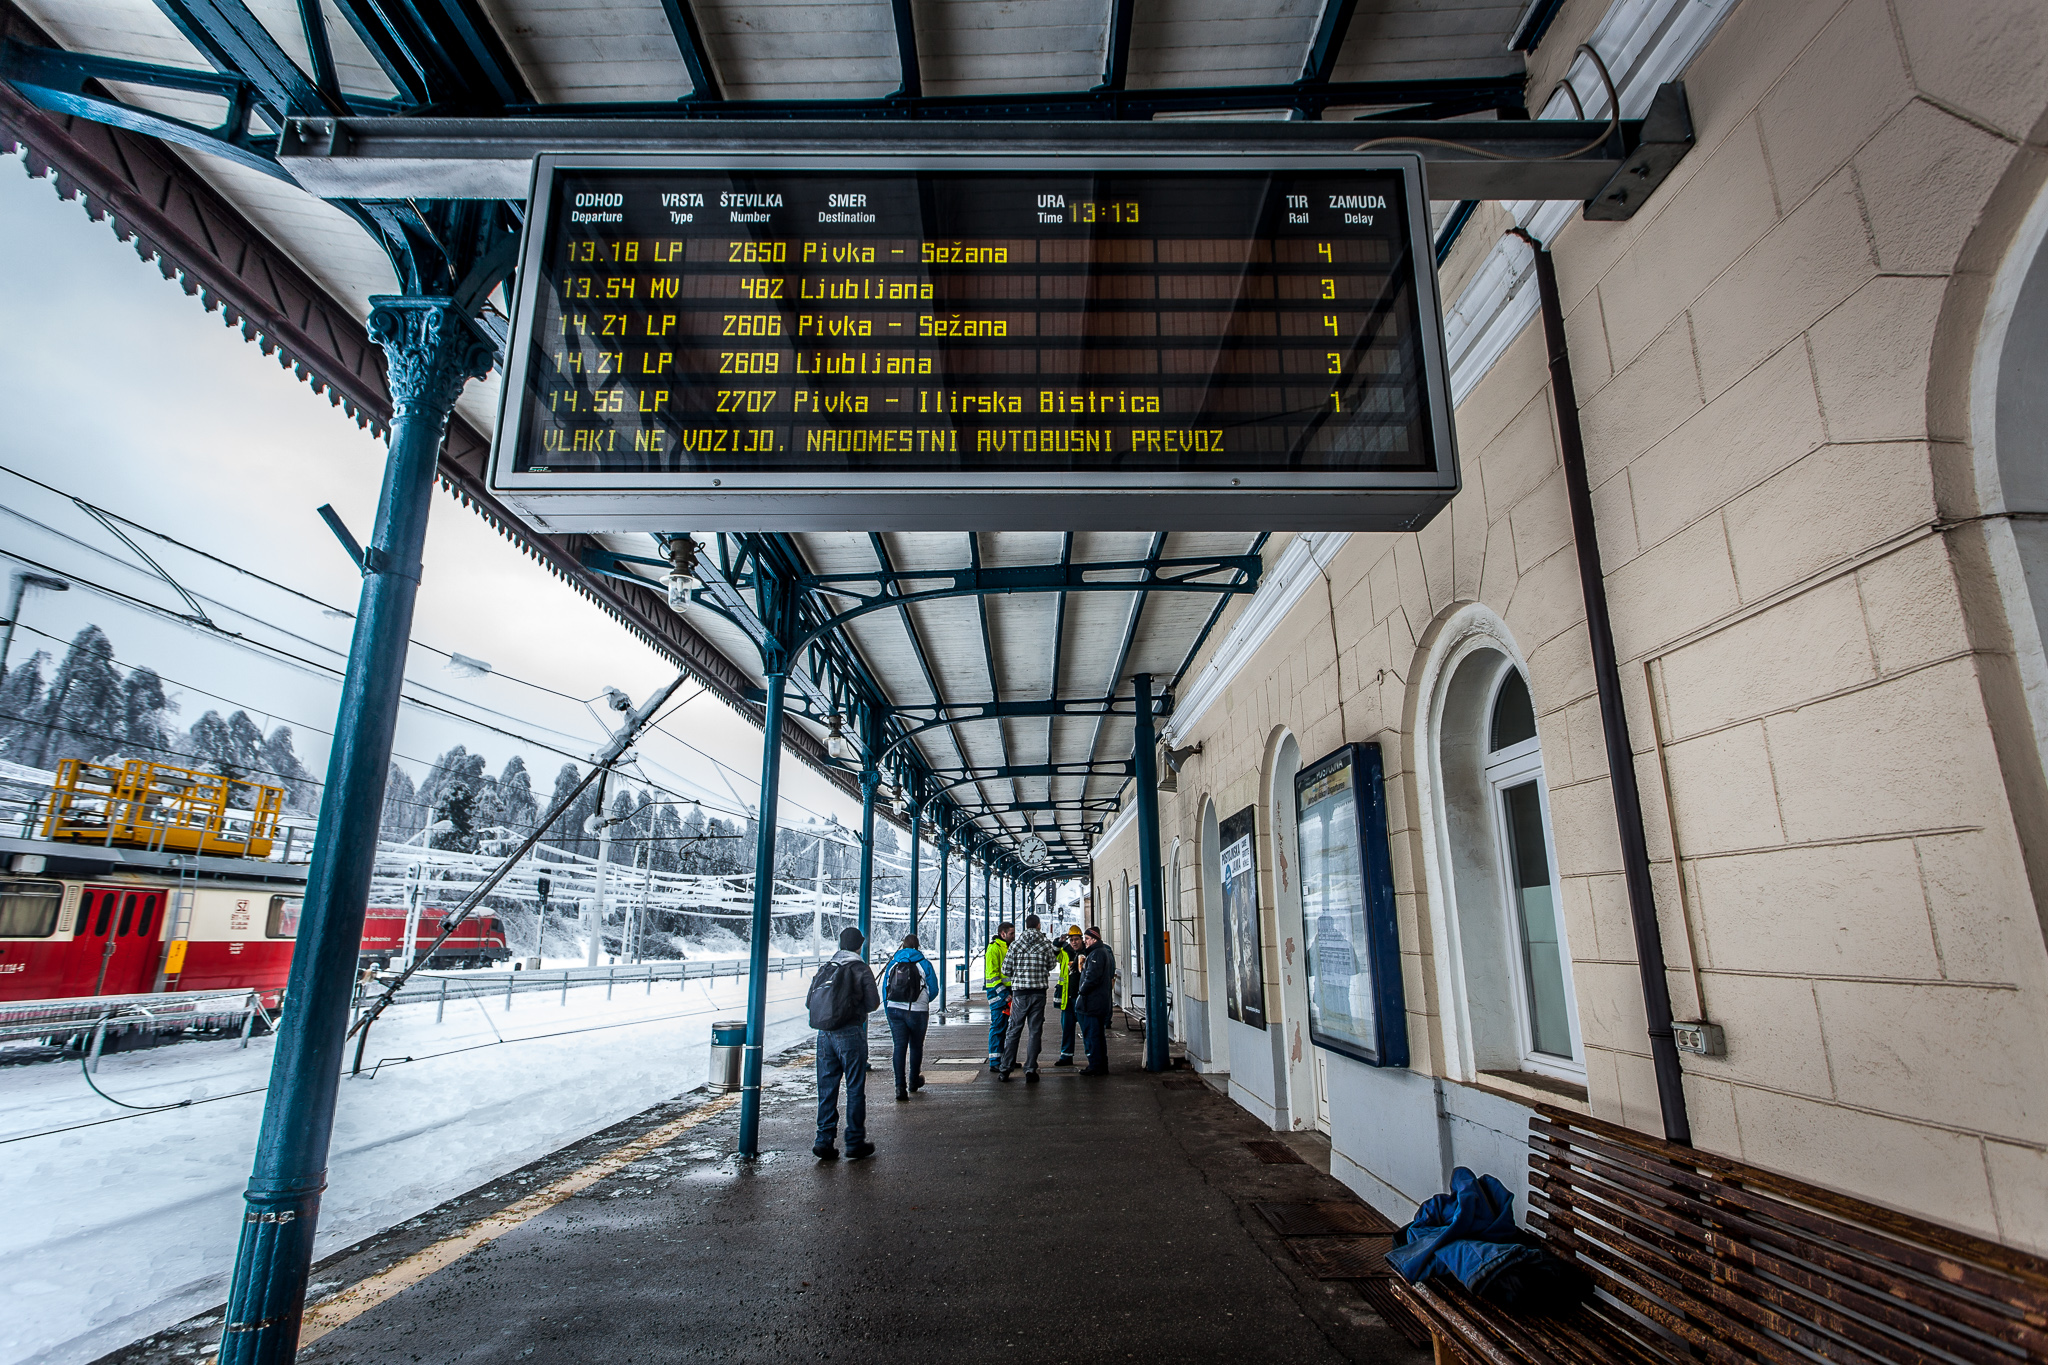 'Trains do not run. Substitute bus service' sign on the info-board at the Postojna train station. Workers are talking about repairing the tracks.